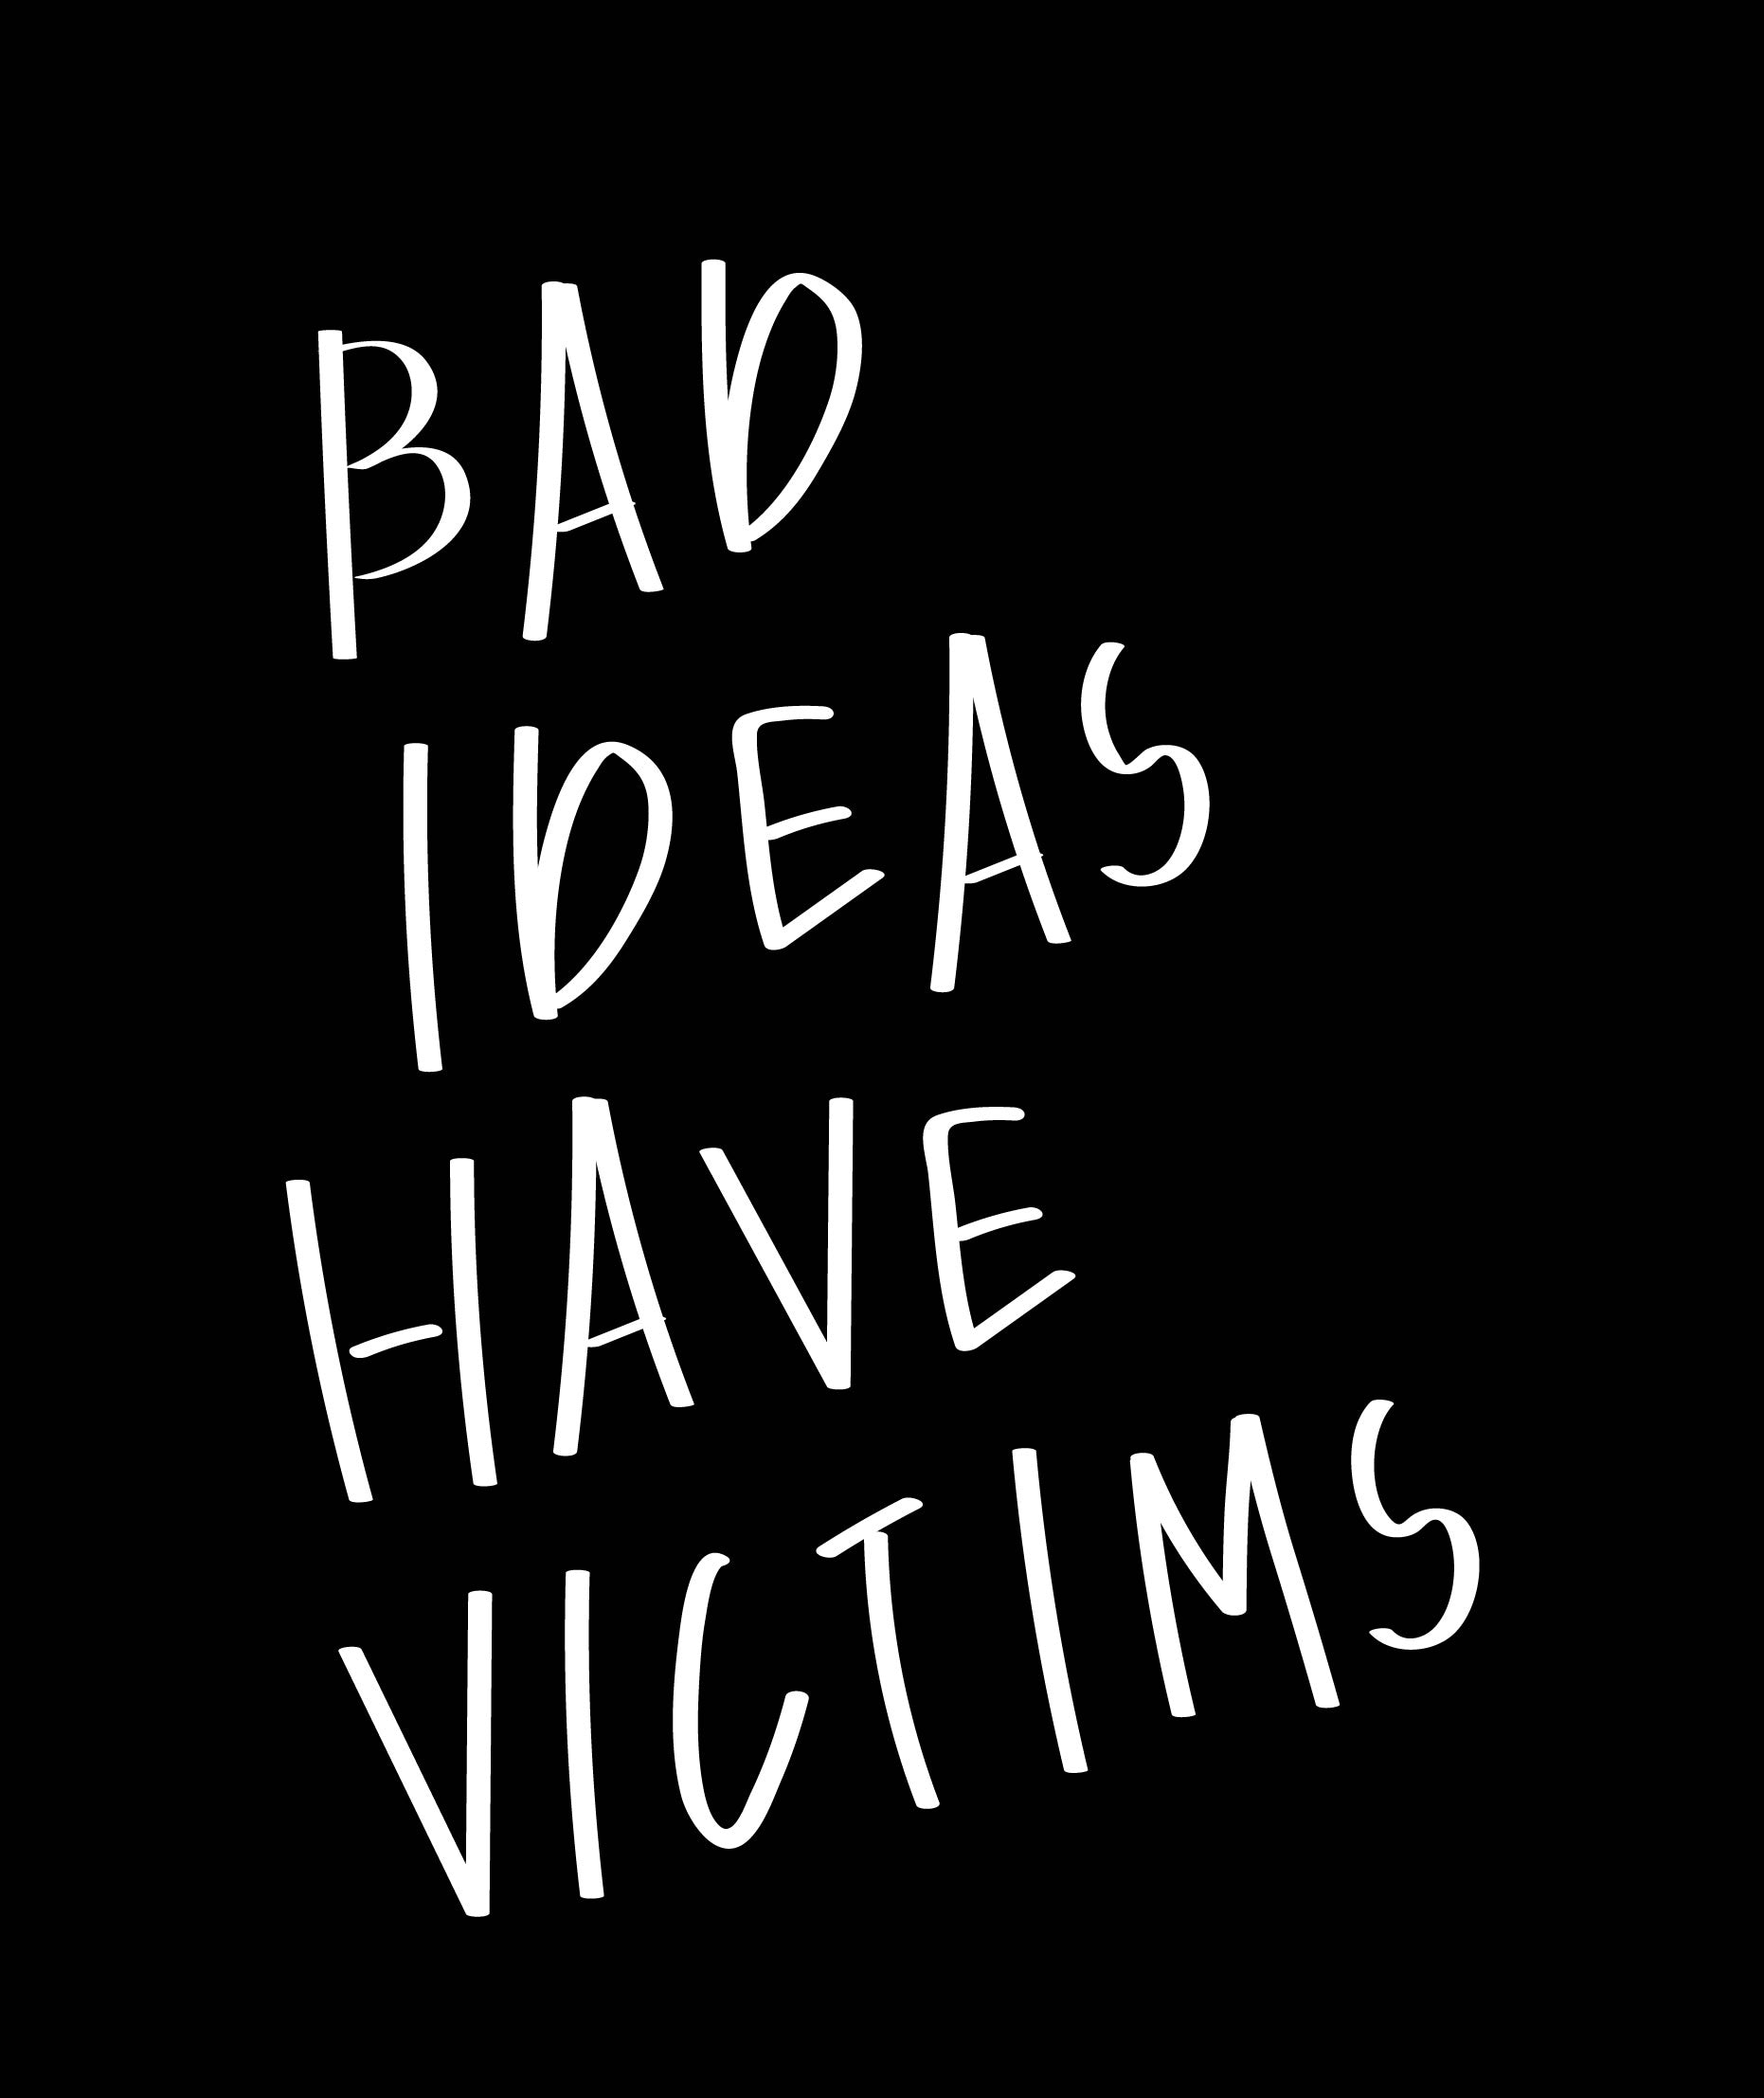 BAD IDEAS HAVE VICTIMS - SCRIPT - Mens Premium Fitted Graphic Tee